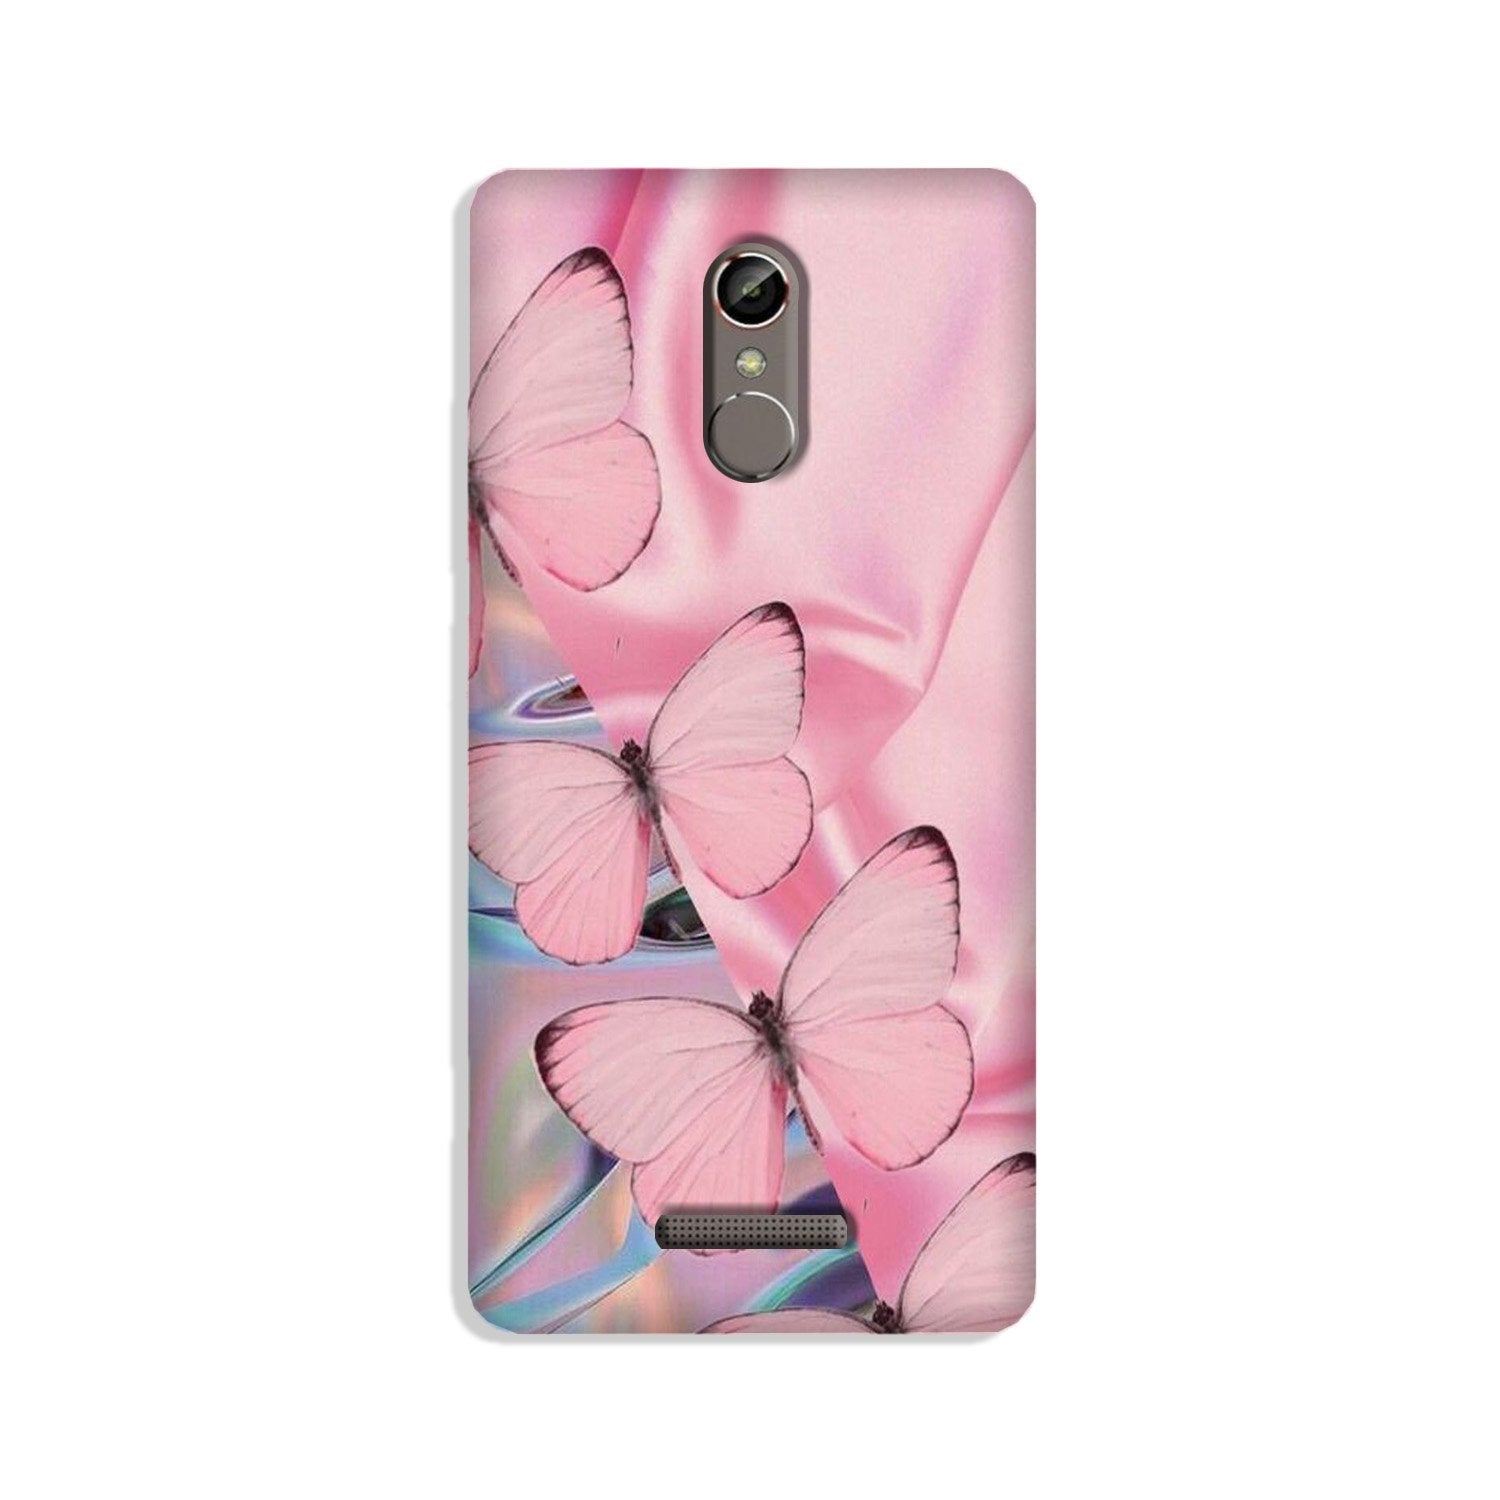 Butterflies Case for Redmi Note 3